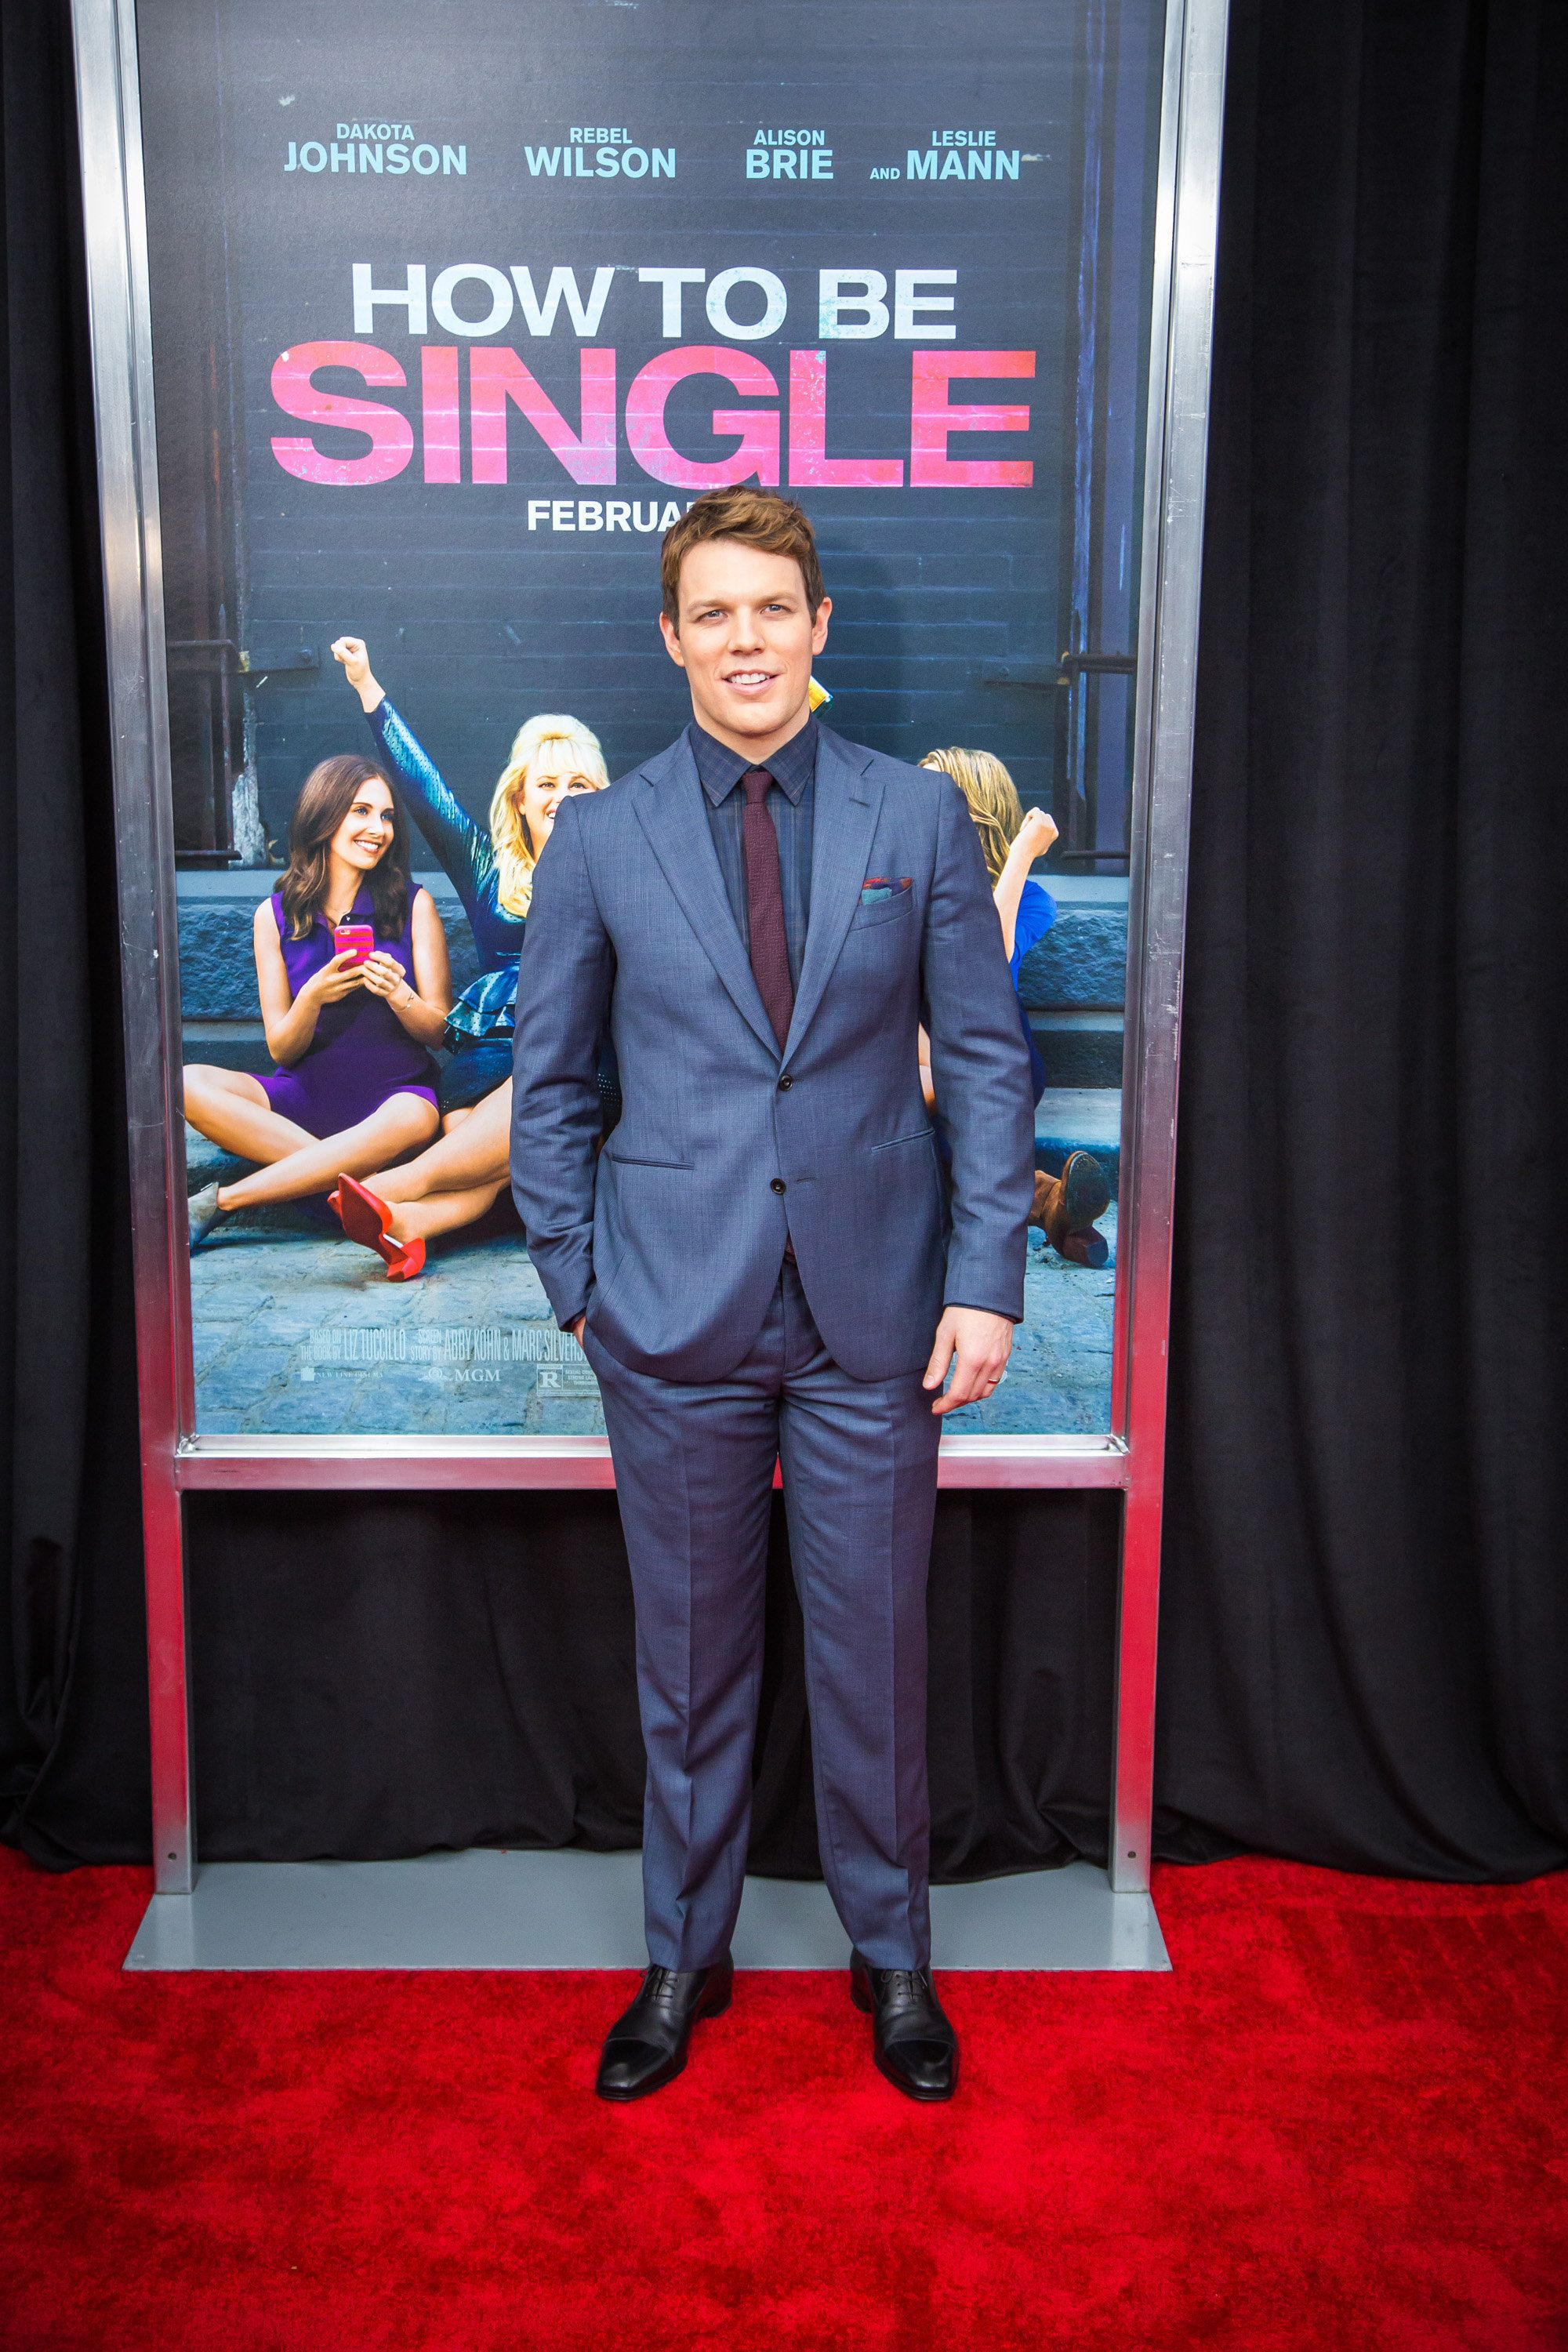 Jake lacy how to be single premiere at the nyu skirball center jake lacy how to be single premiere at the nyu skirball center in ccuart Choice Image